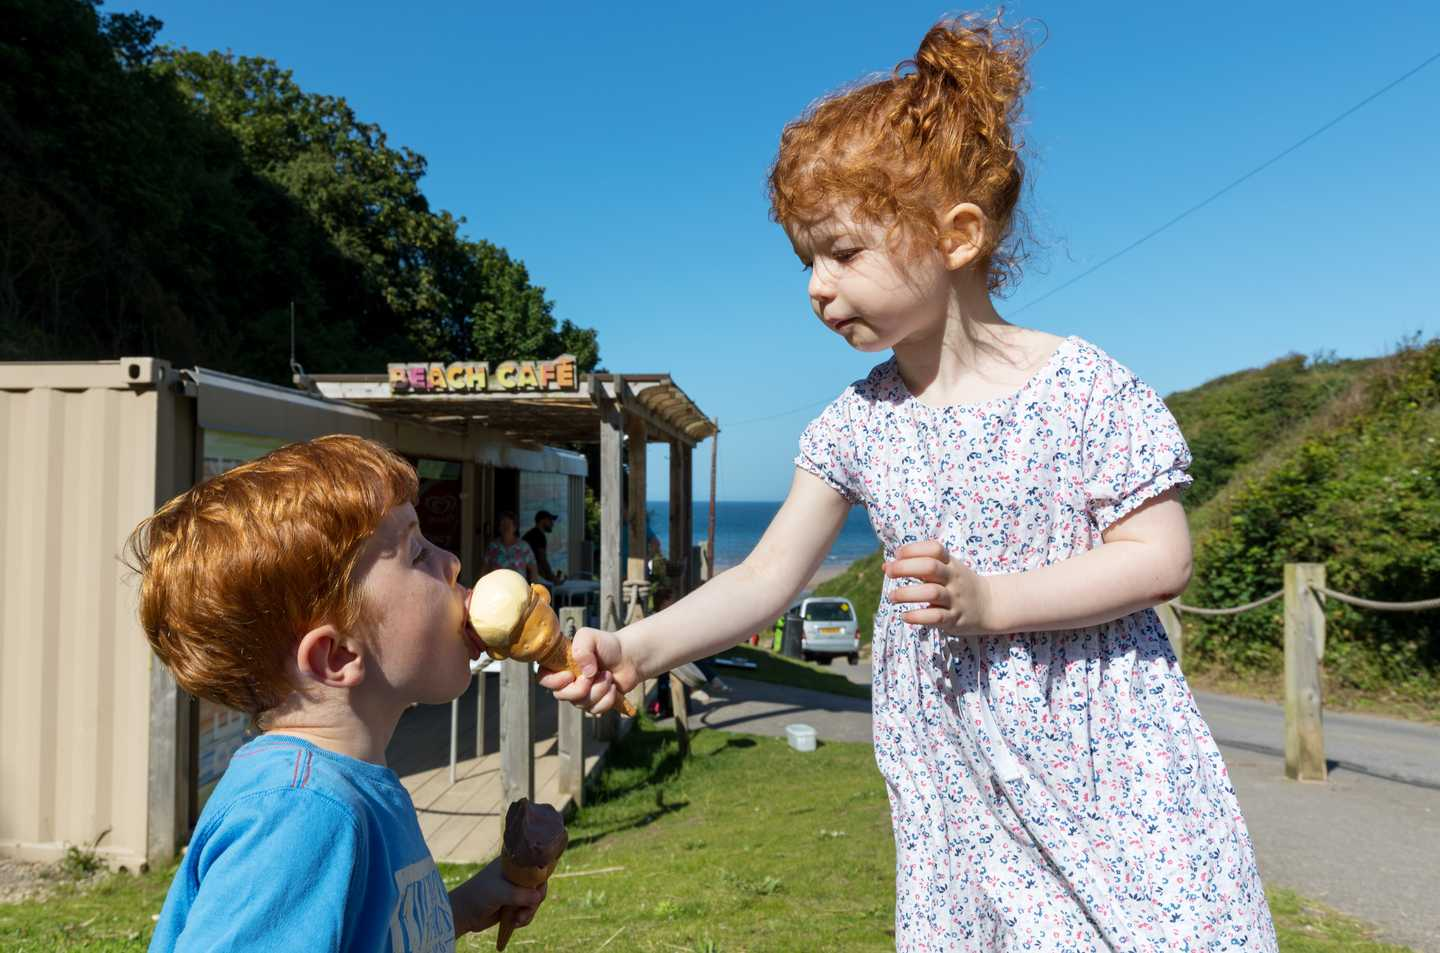 Children eating an ice cream from the beach café